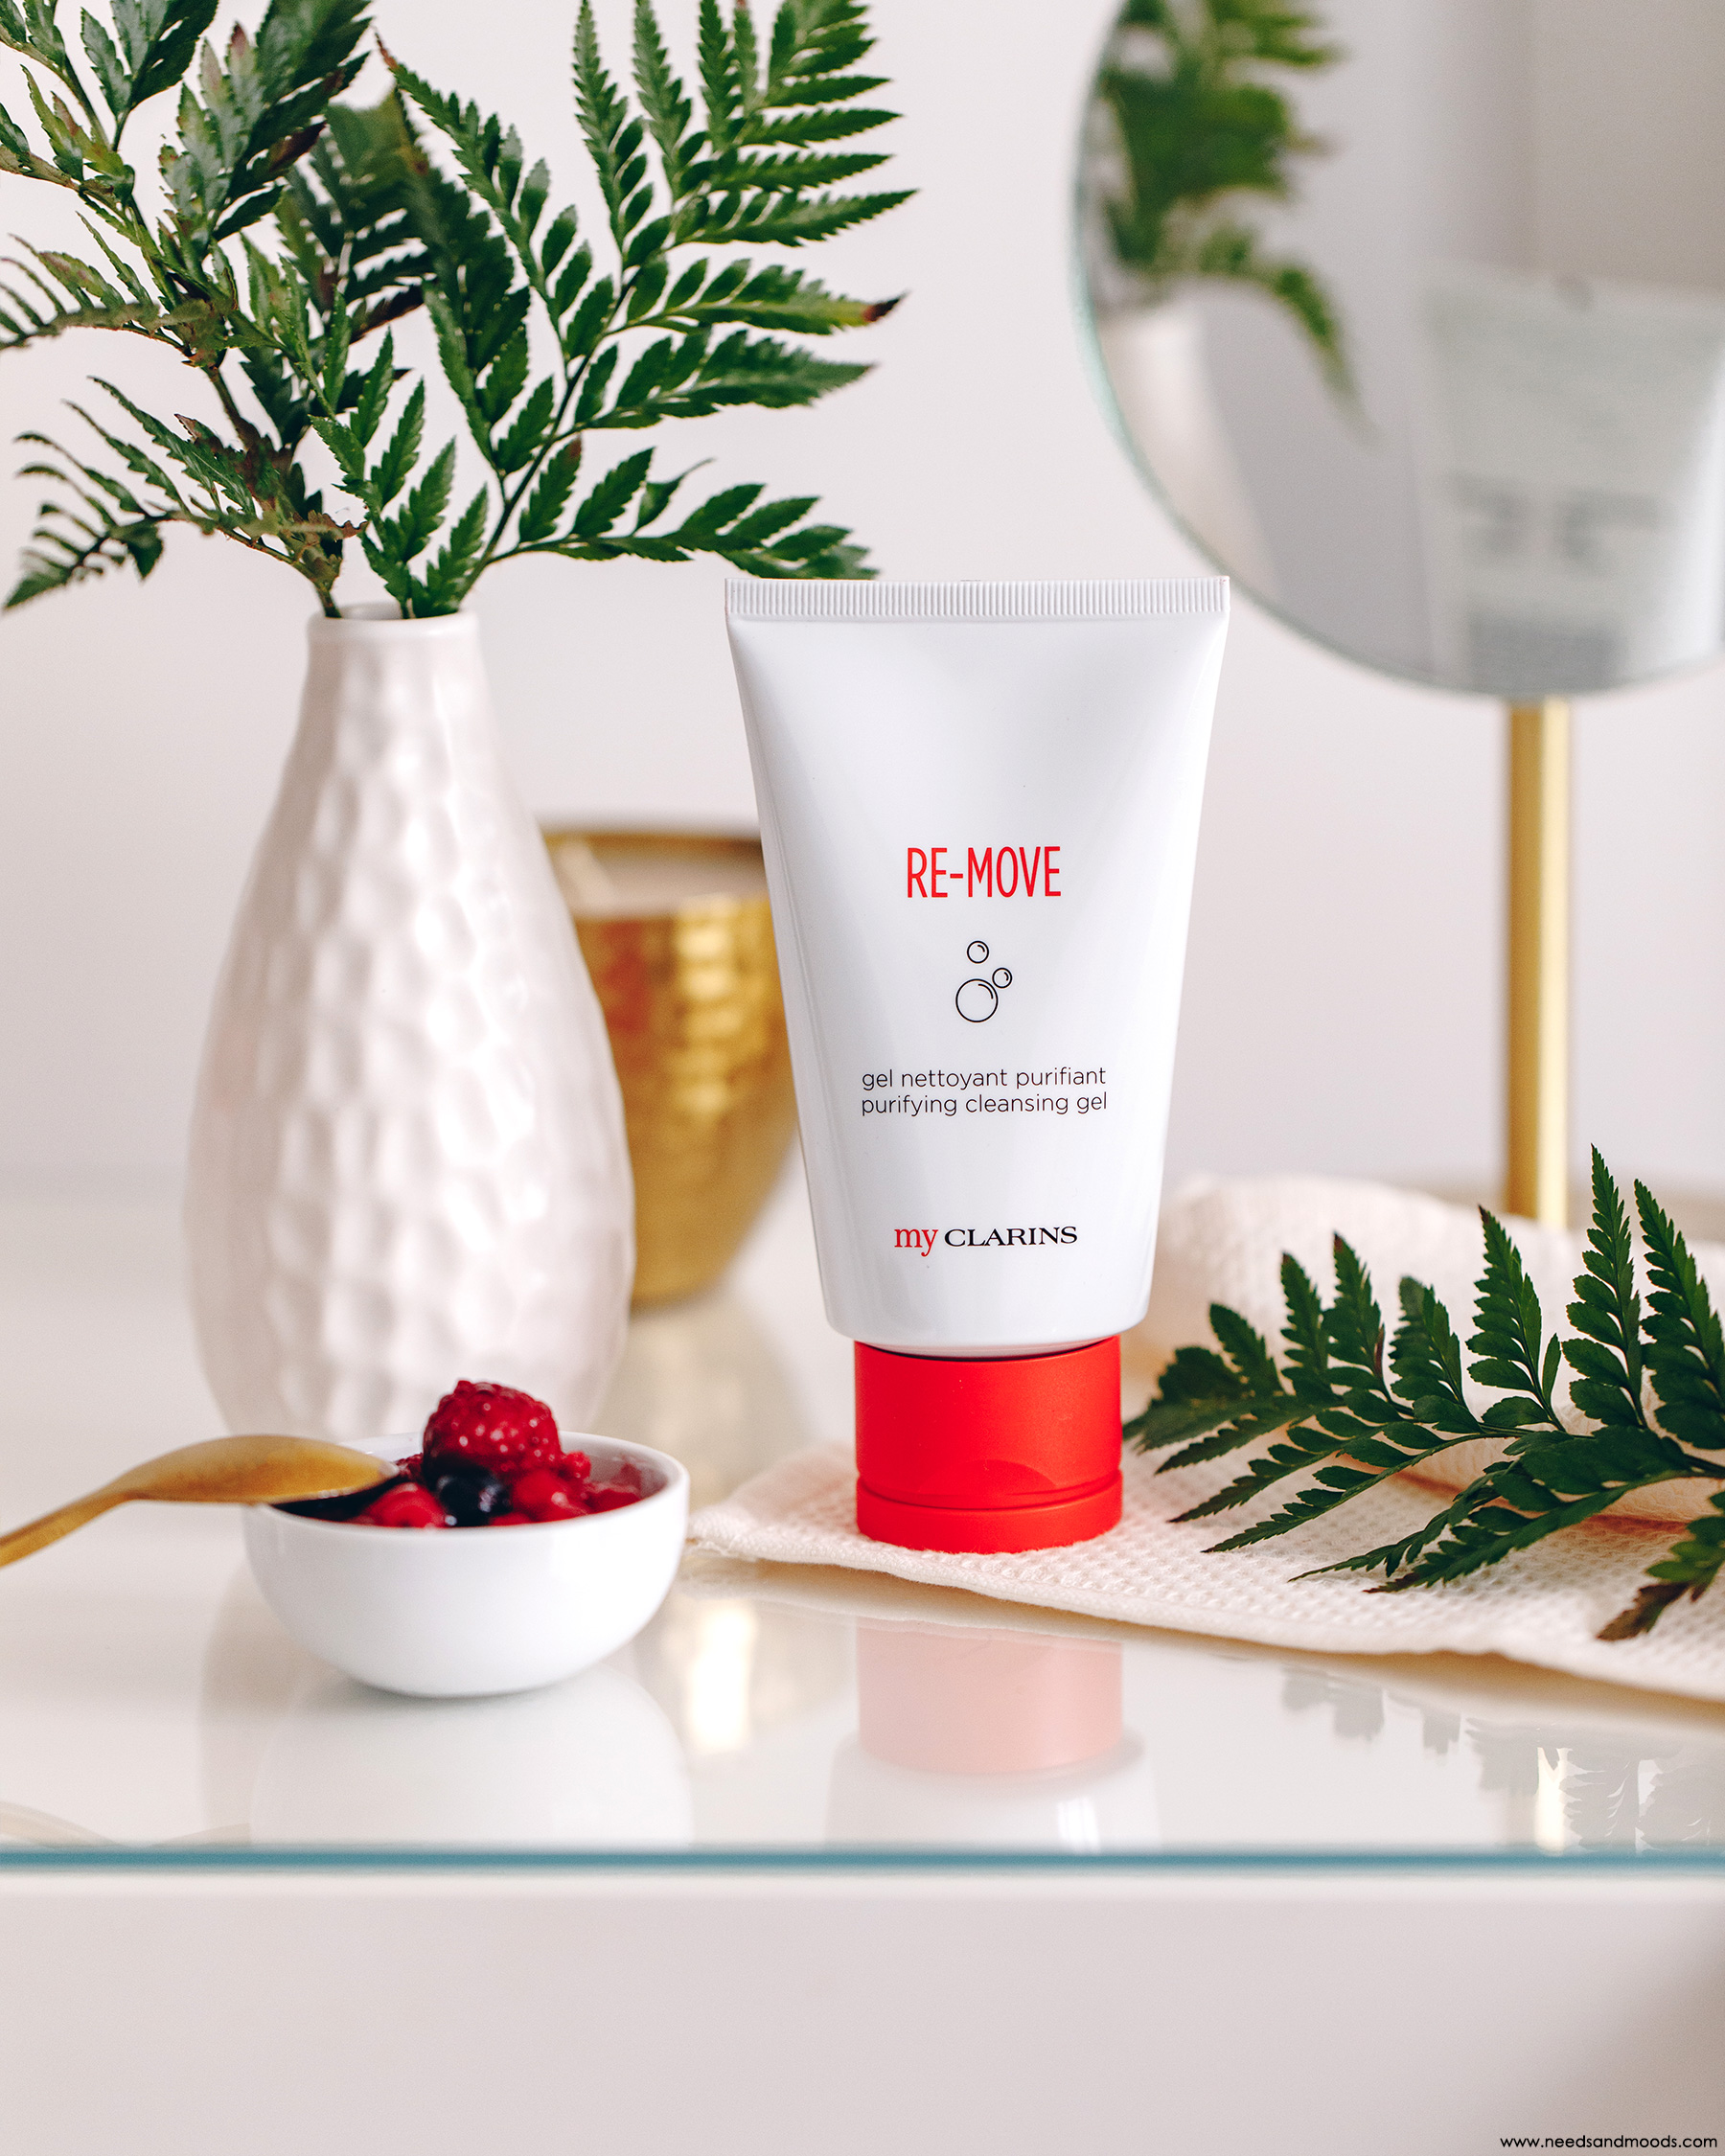 clarins my clarins re-move gel nettoyant purifiant avis